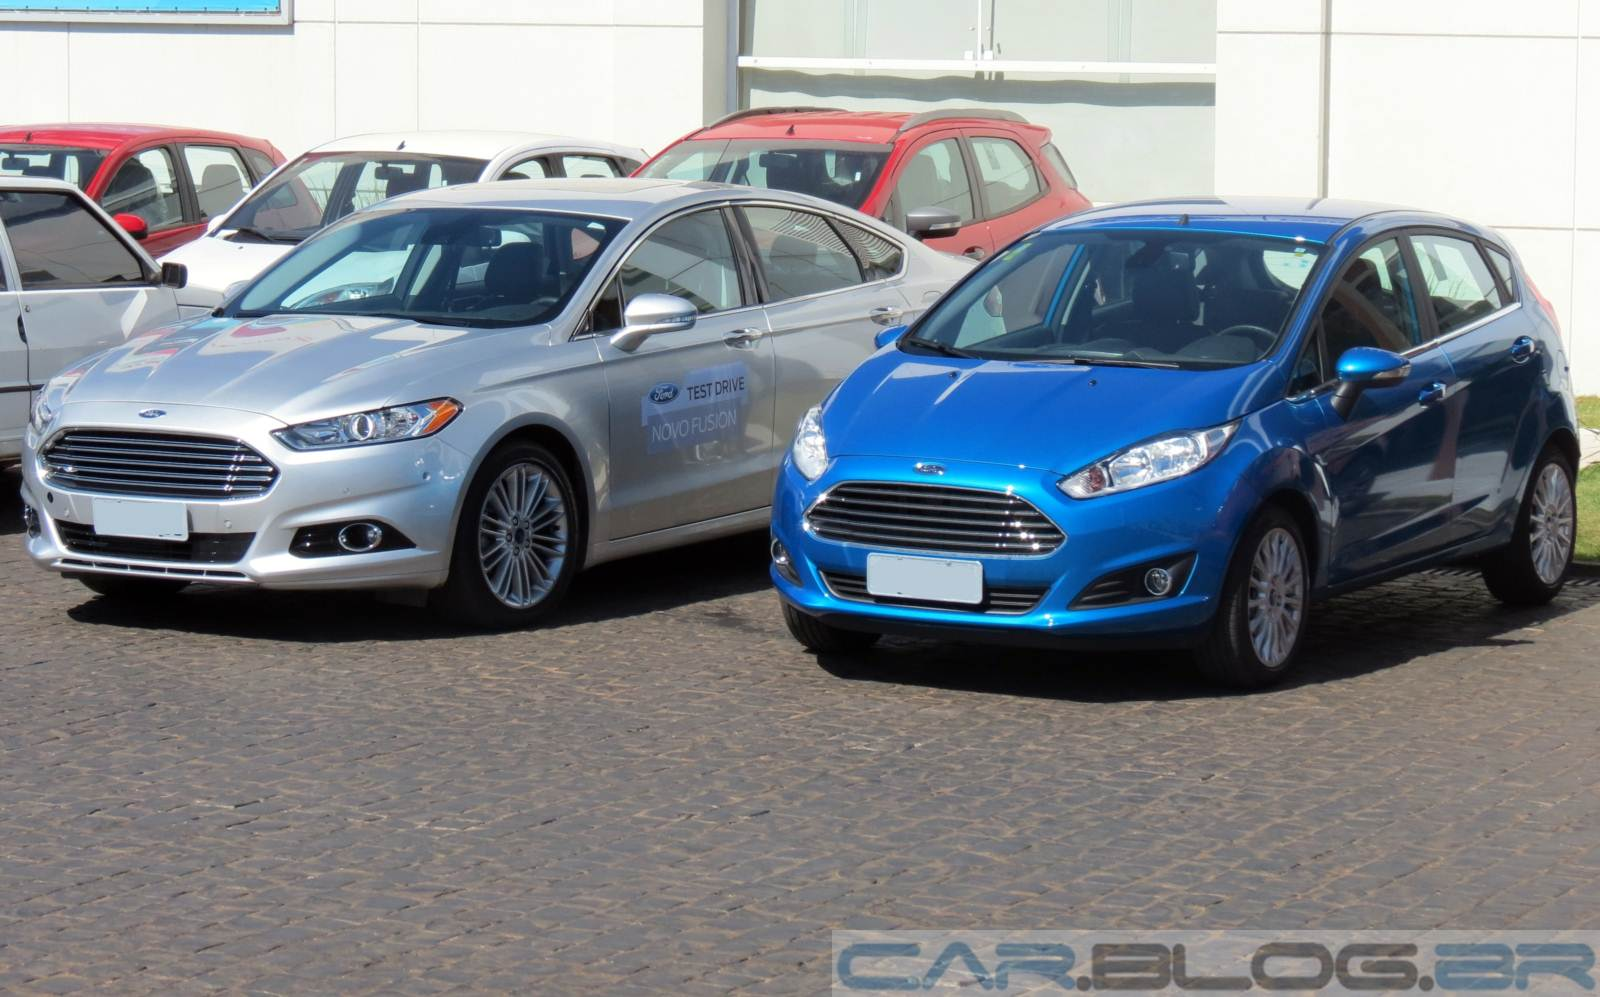 Novo New Fiesta 2015 - central multimídia